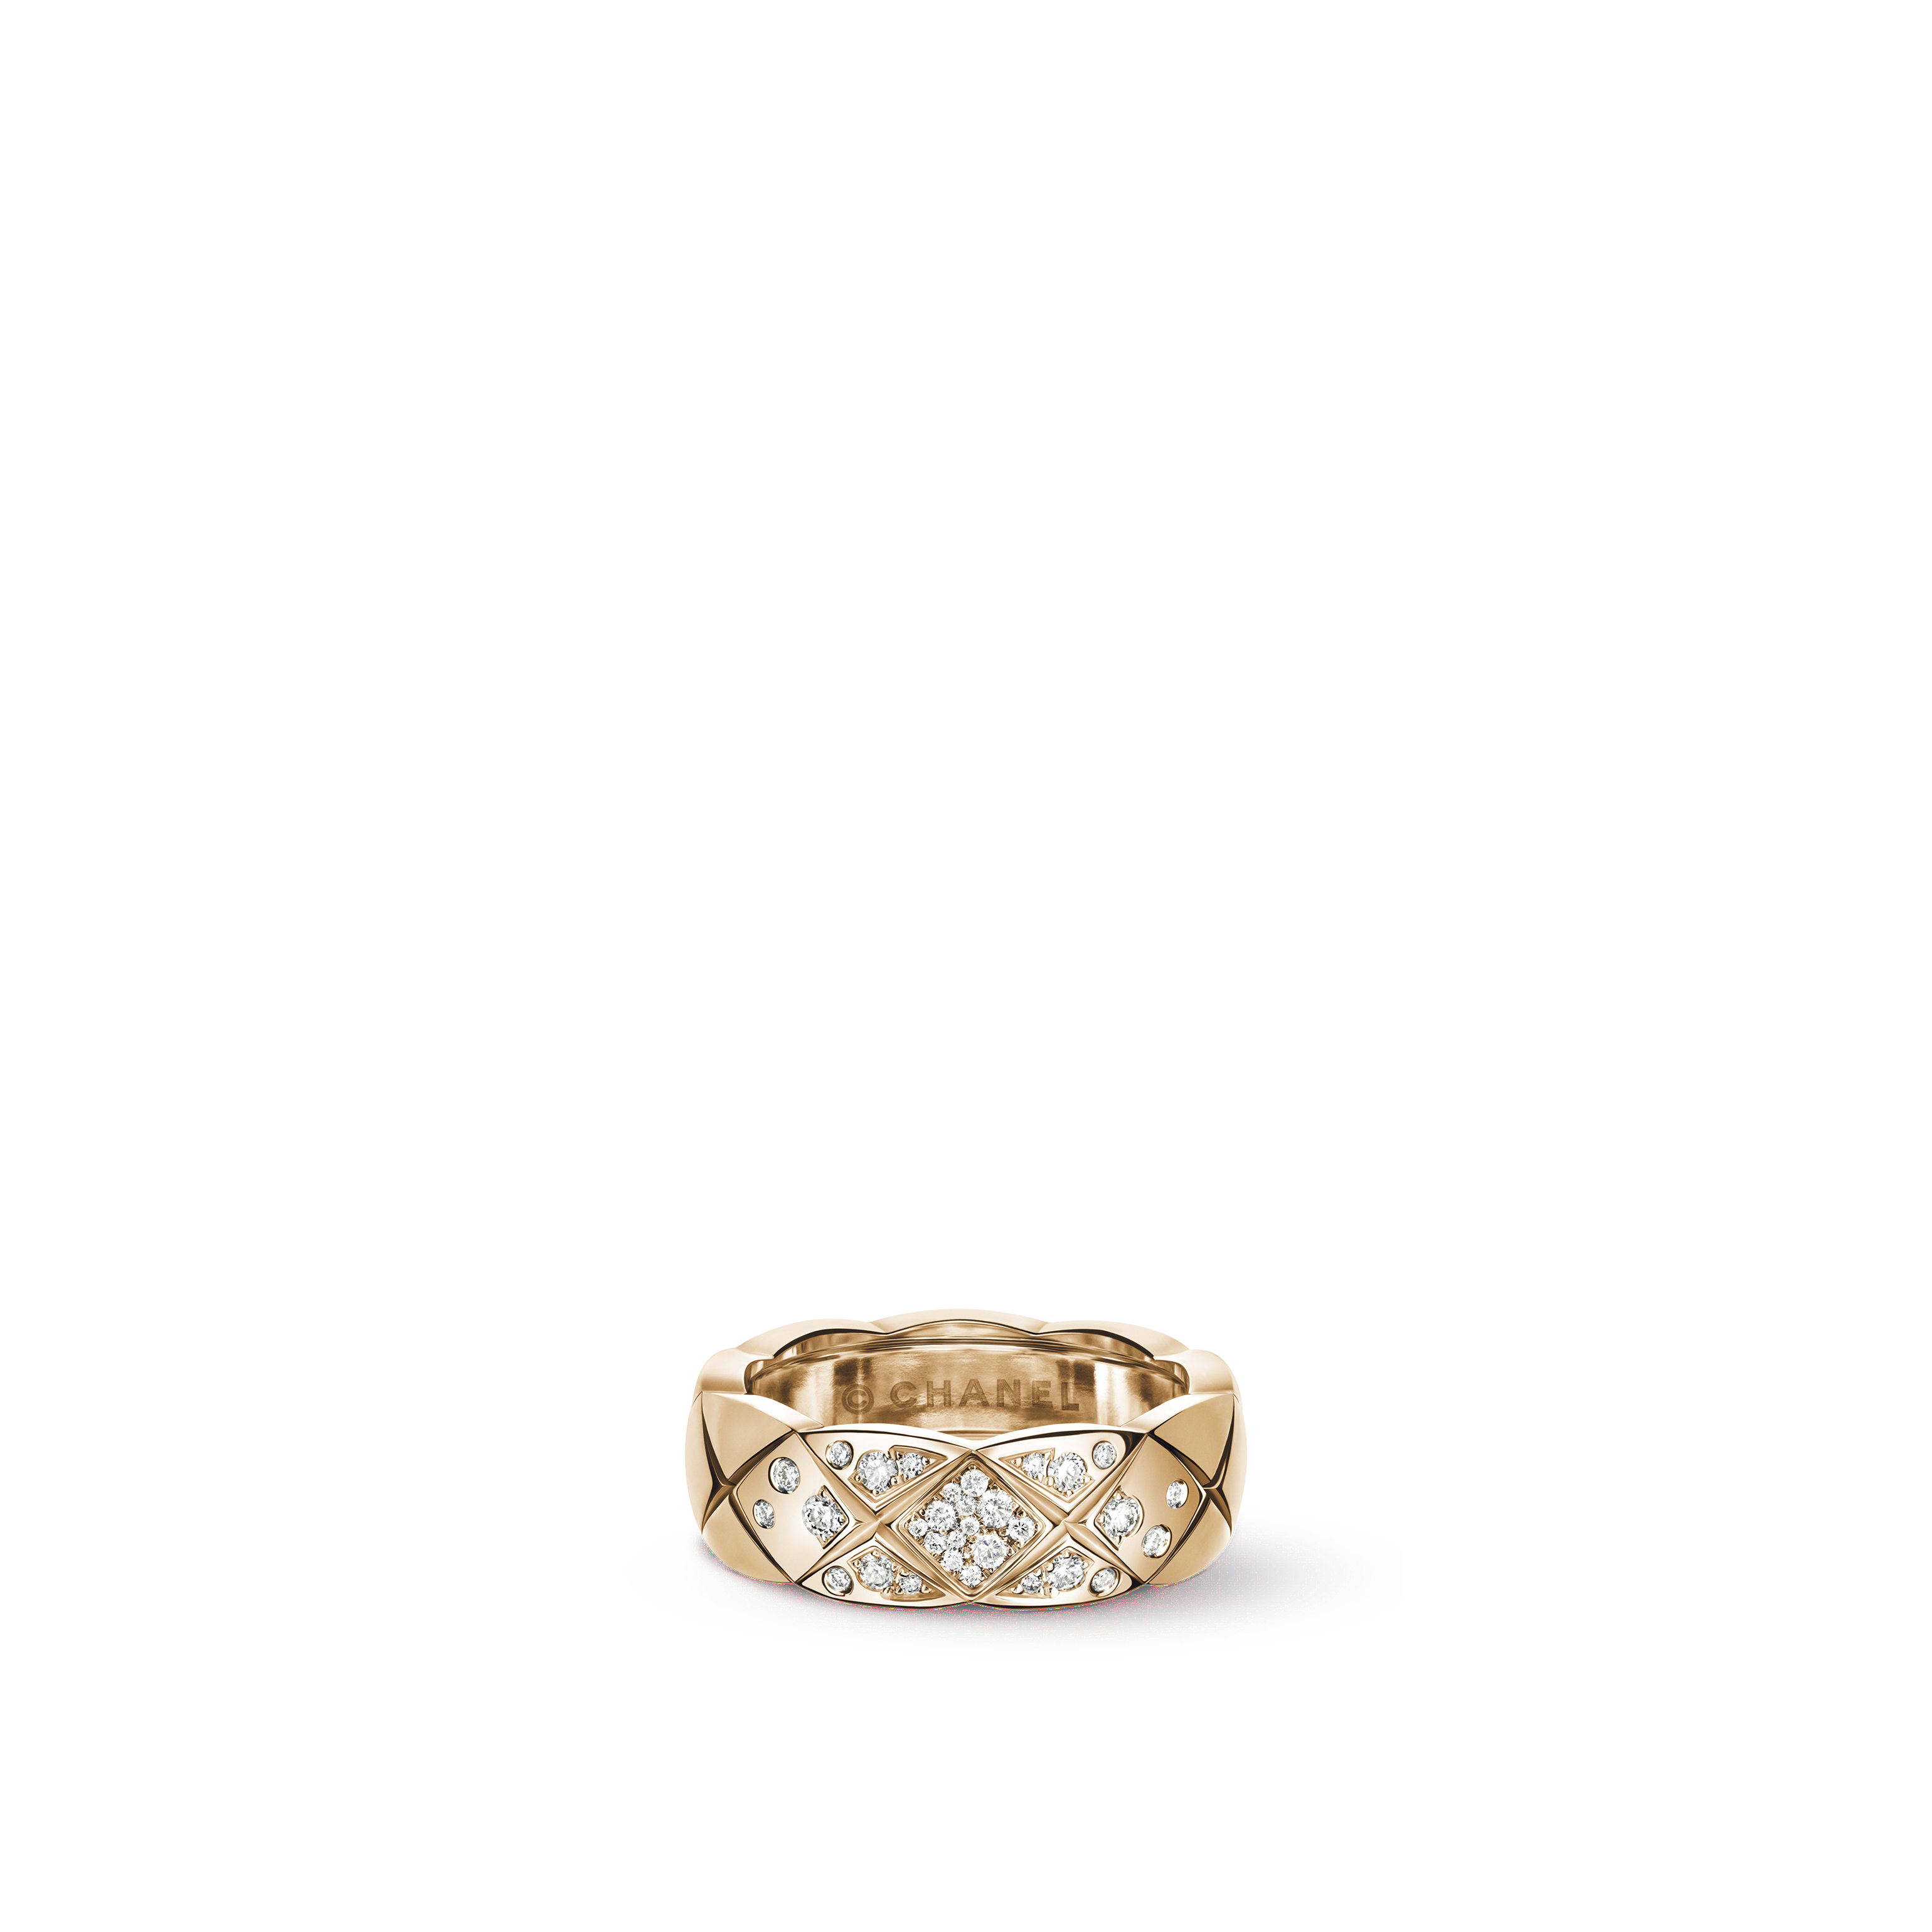 Coco Crush ring - Quilted motif, small version, 18K BEIGE GOLD, diamonds - CHANEL - Default view - see standard sized version